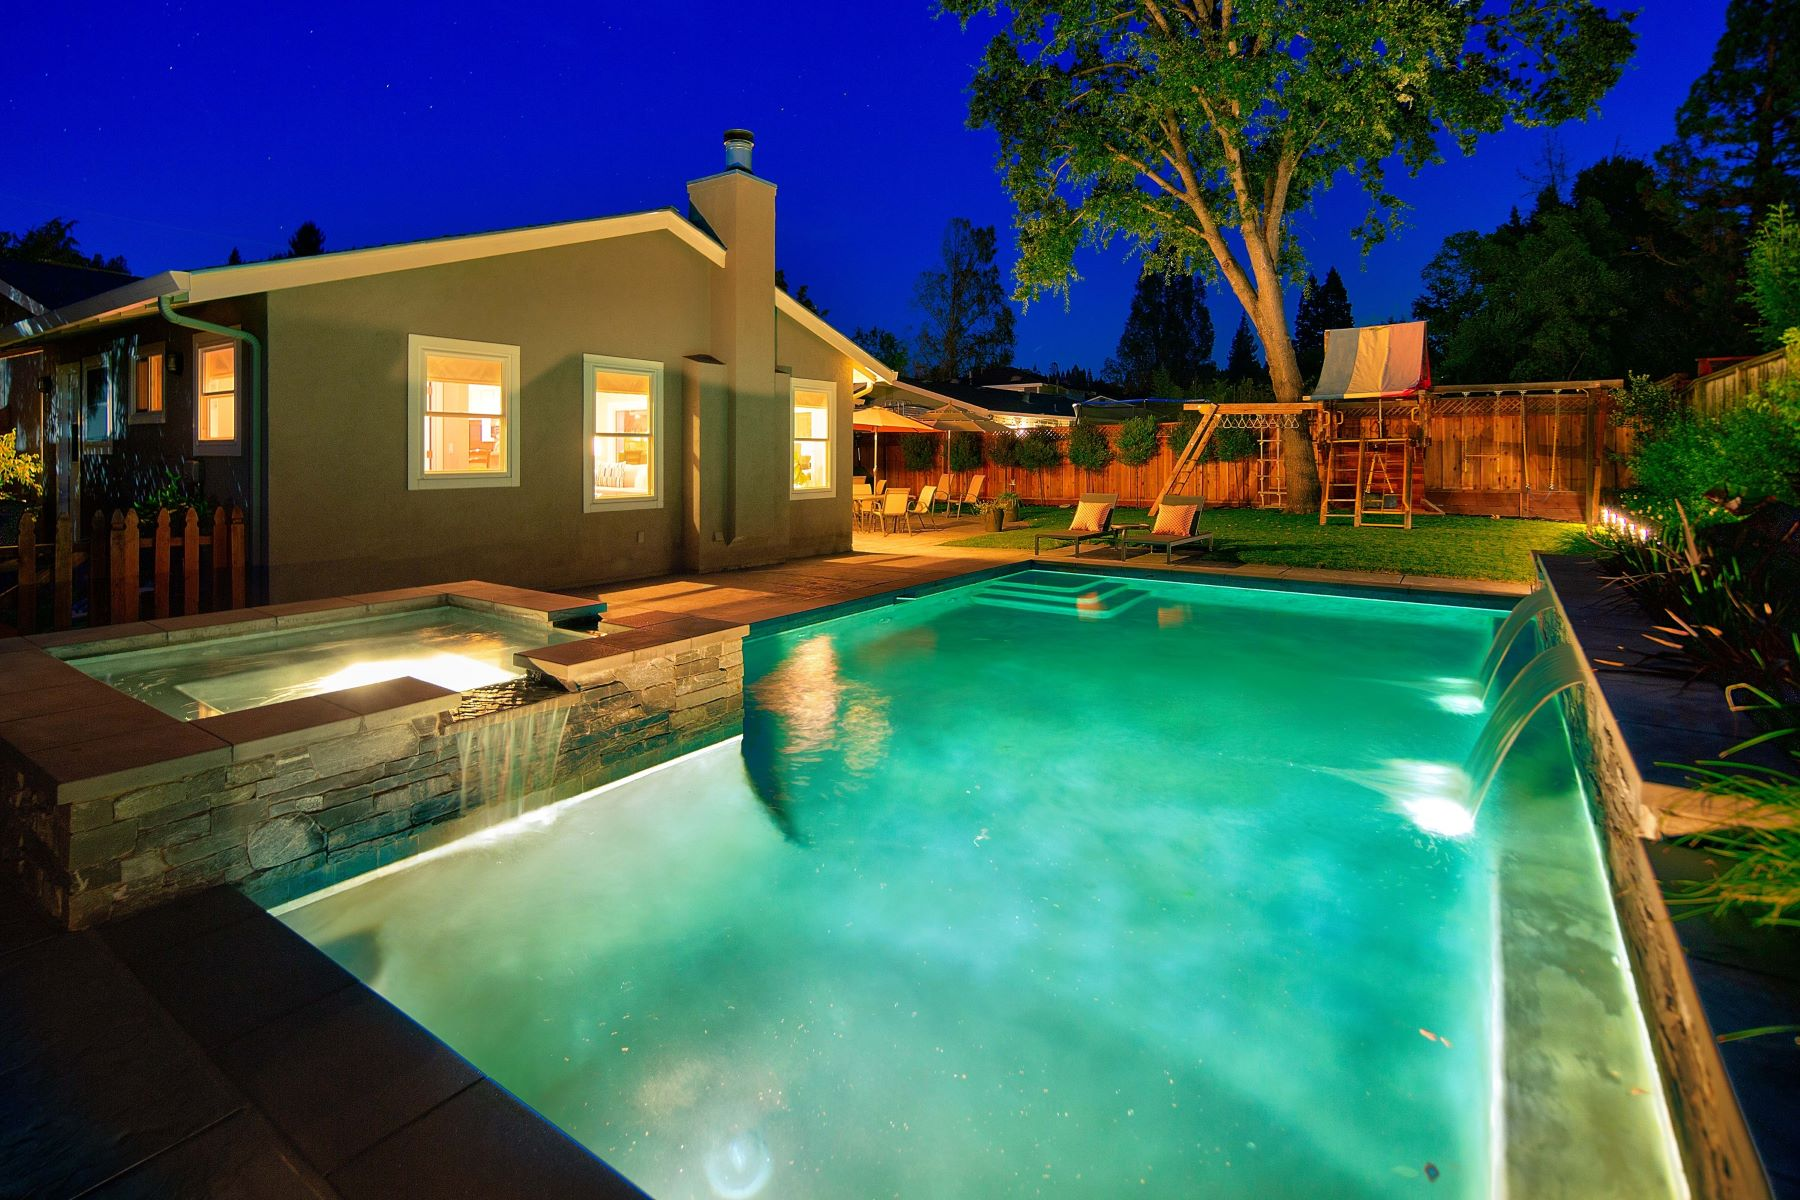 Single Family Homes for Sale at Updated Single Story With Pool 264 Gil Blas Road Danville, California 94526 United States